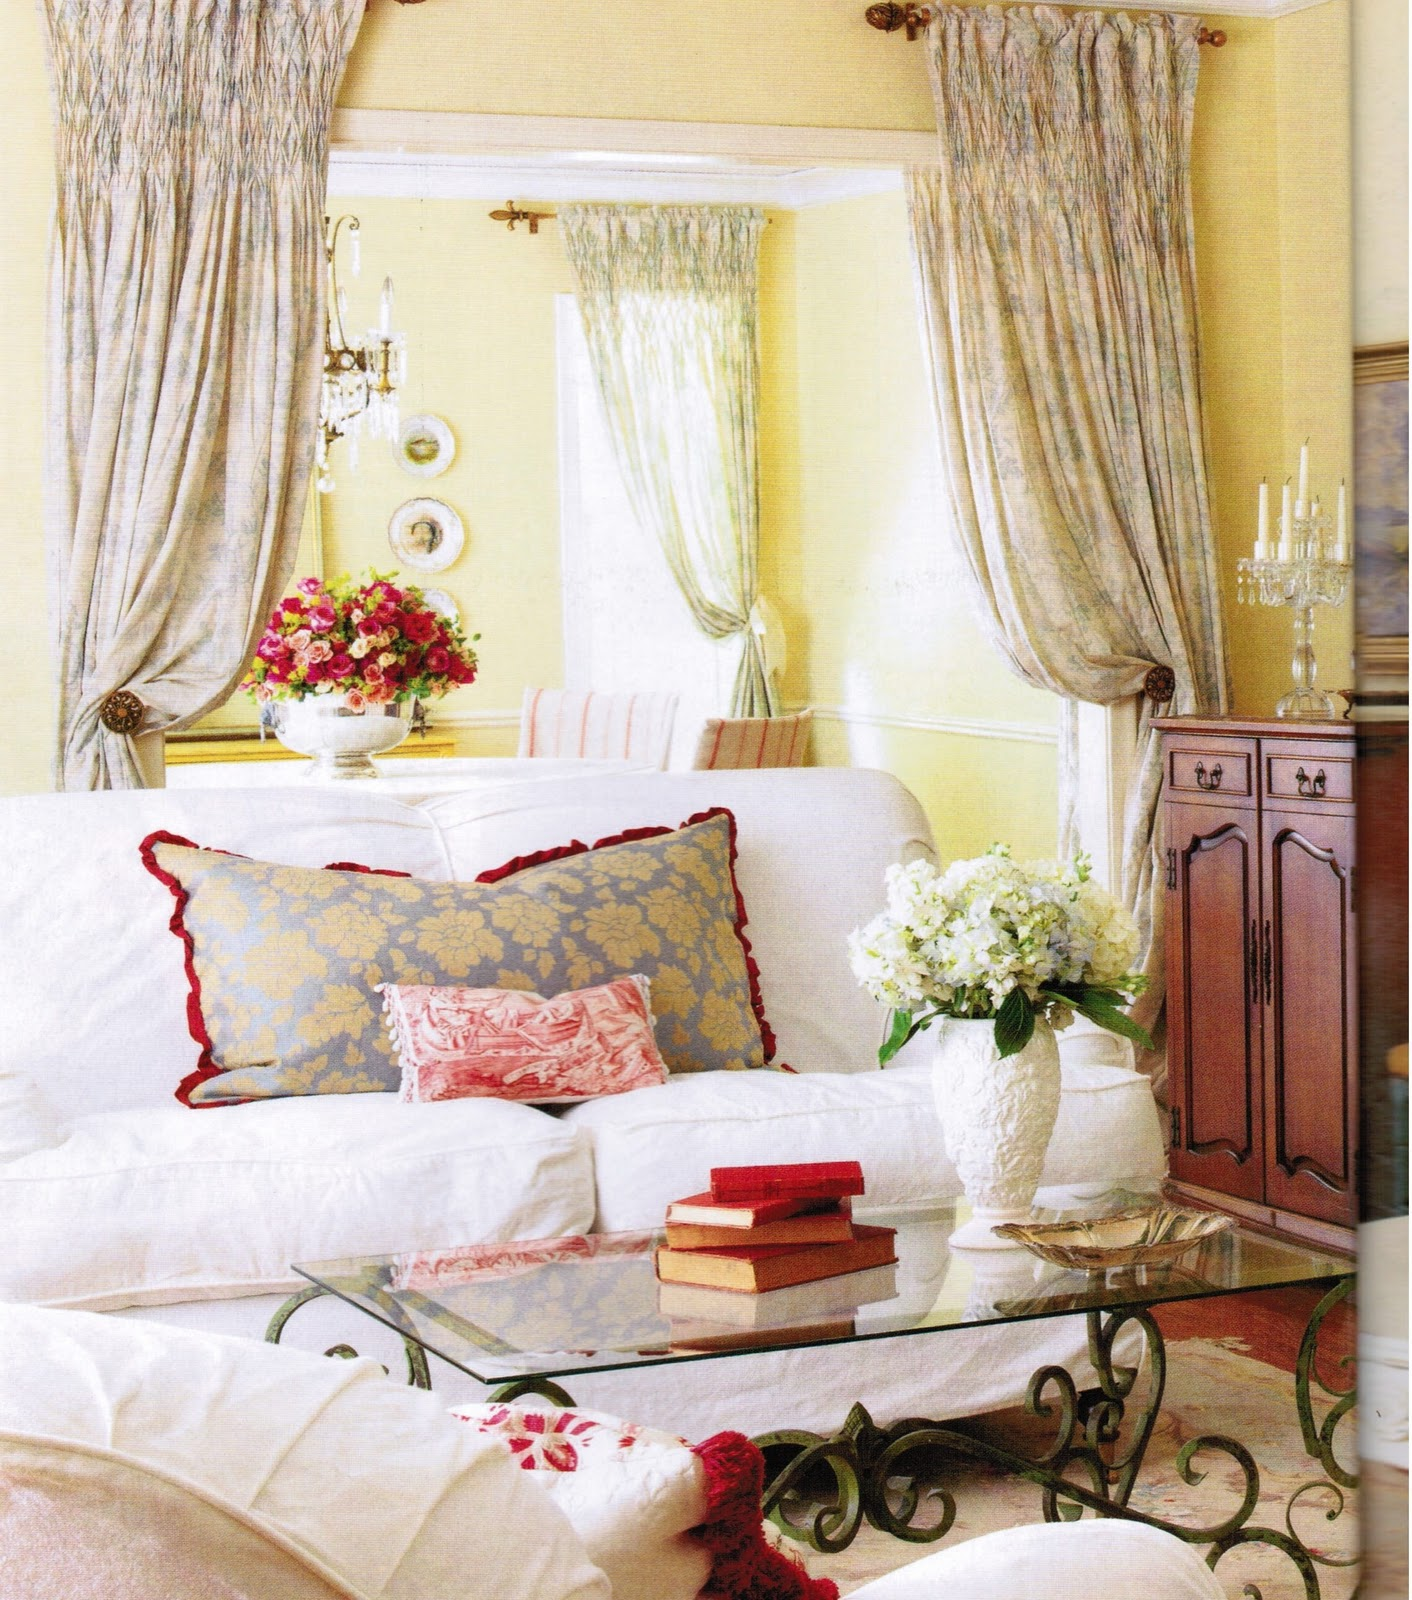 French Bedroom Design Ideas: Maison Decor: French Country: Enchanting Yellow & White